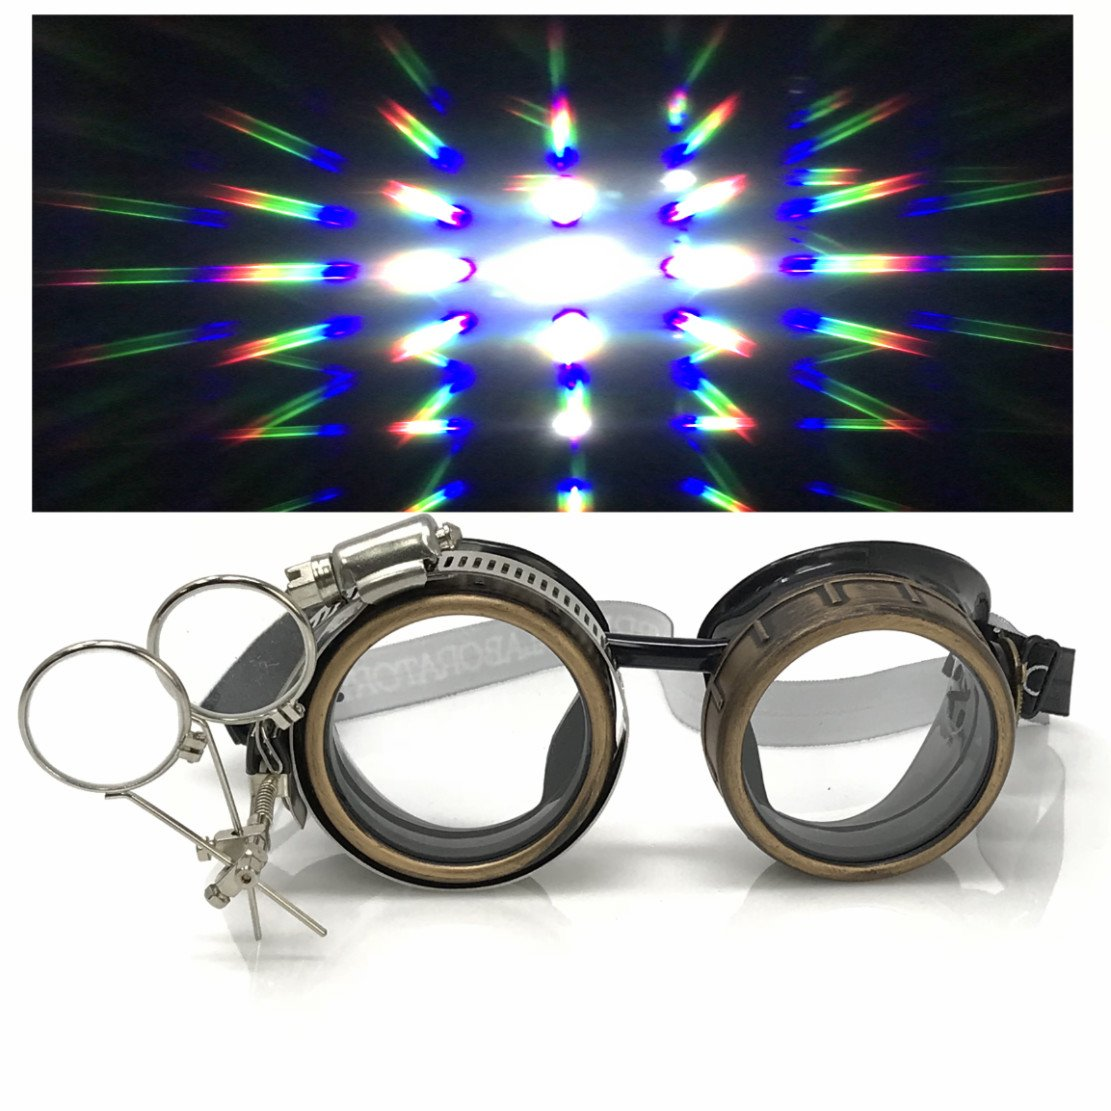 UMBRELLALABORATORY Steampunk Victorian Style Goggles with Compass Design, Colored Lenses & Ocular Loupe gcg clear 1x prism